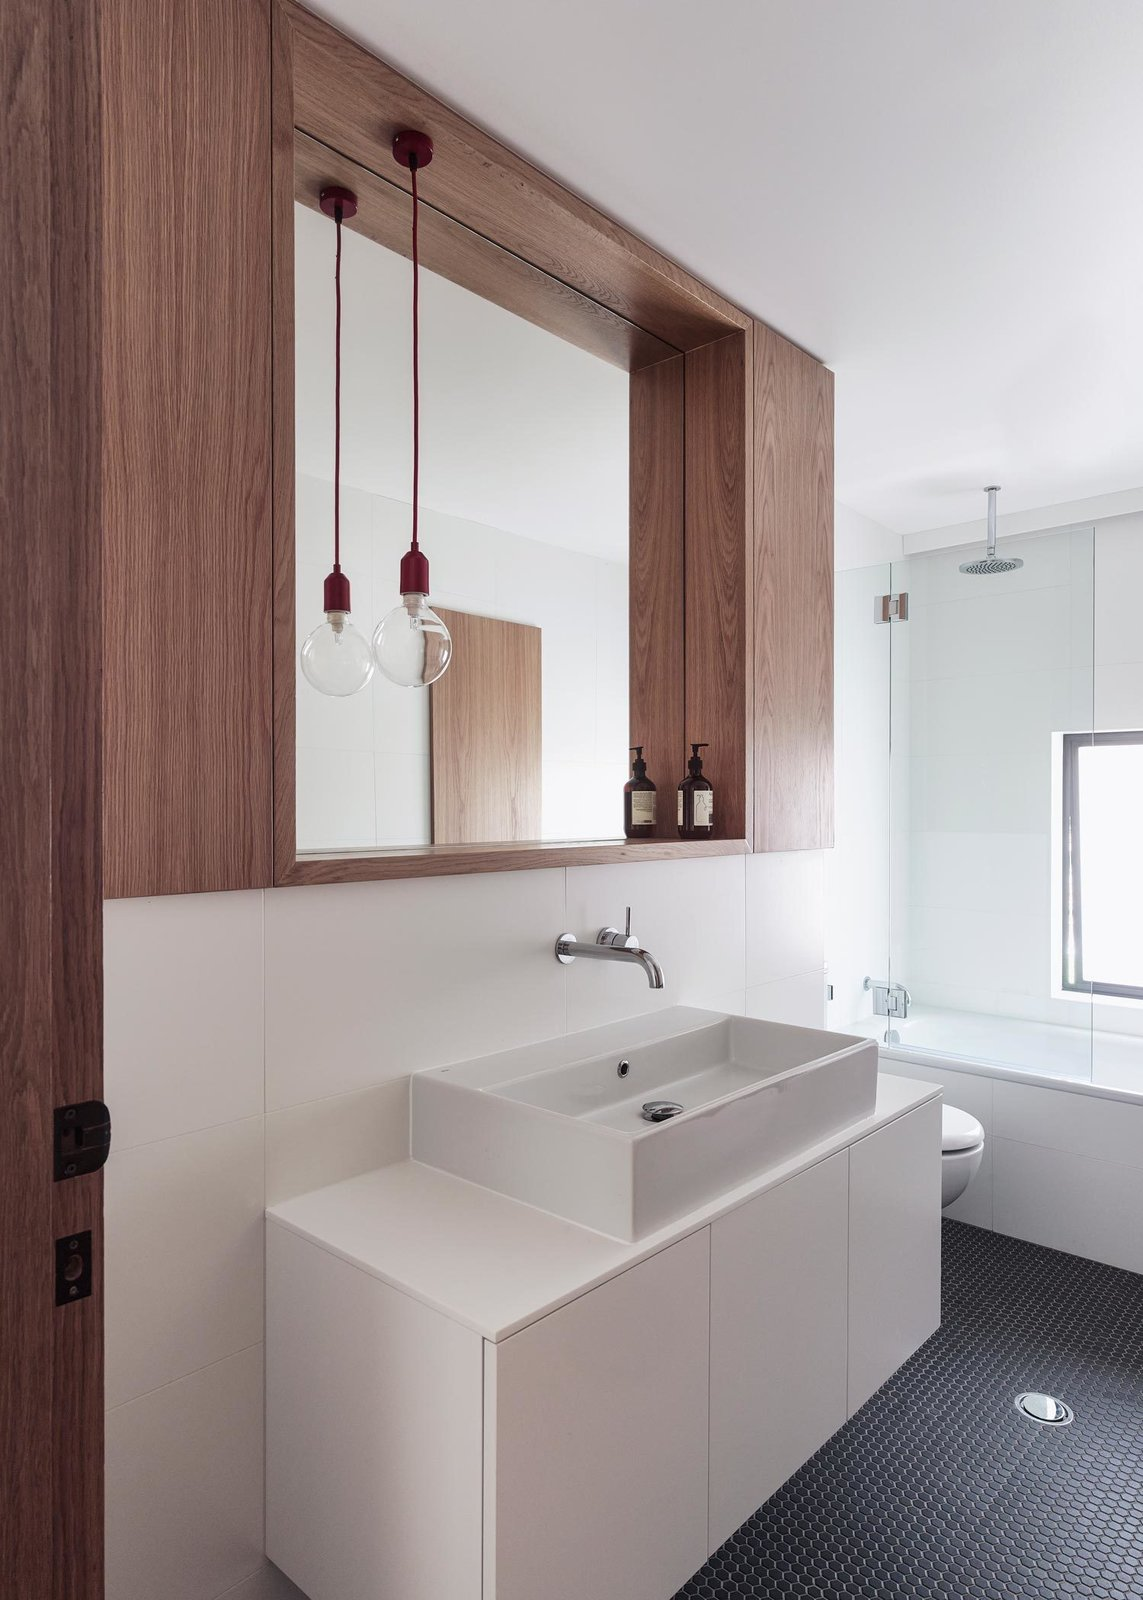 Bath Room and Vessel Sink As in the kitchen, the bathroom features custom wooden cabinetry and Brodware faucets.  Photo 13 of 21 in A Spotlight on 10 Traditional Homes with Modern Interiors from A Traditional 1920s Bungalow with a Boxy Modern Extension